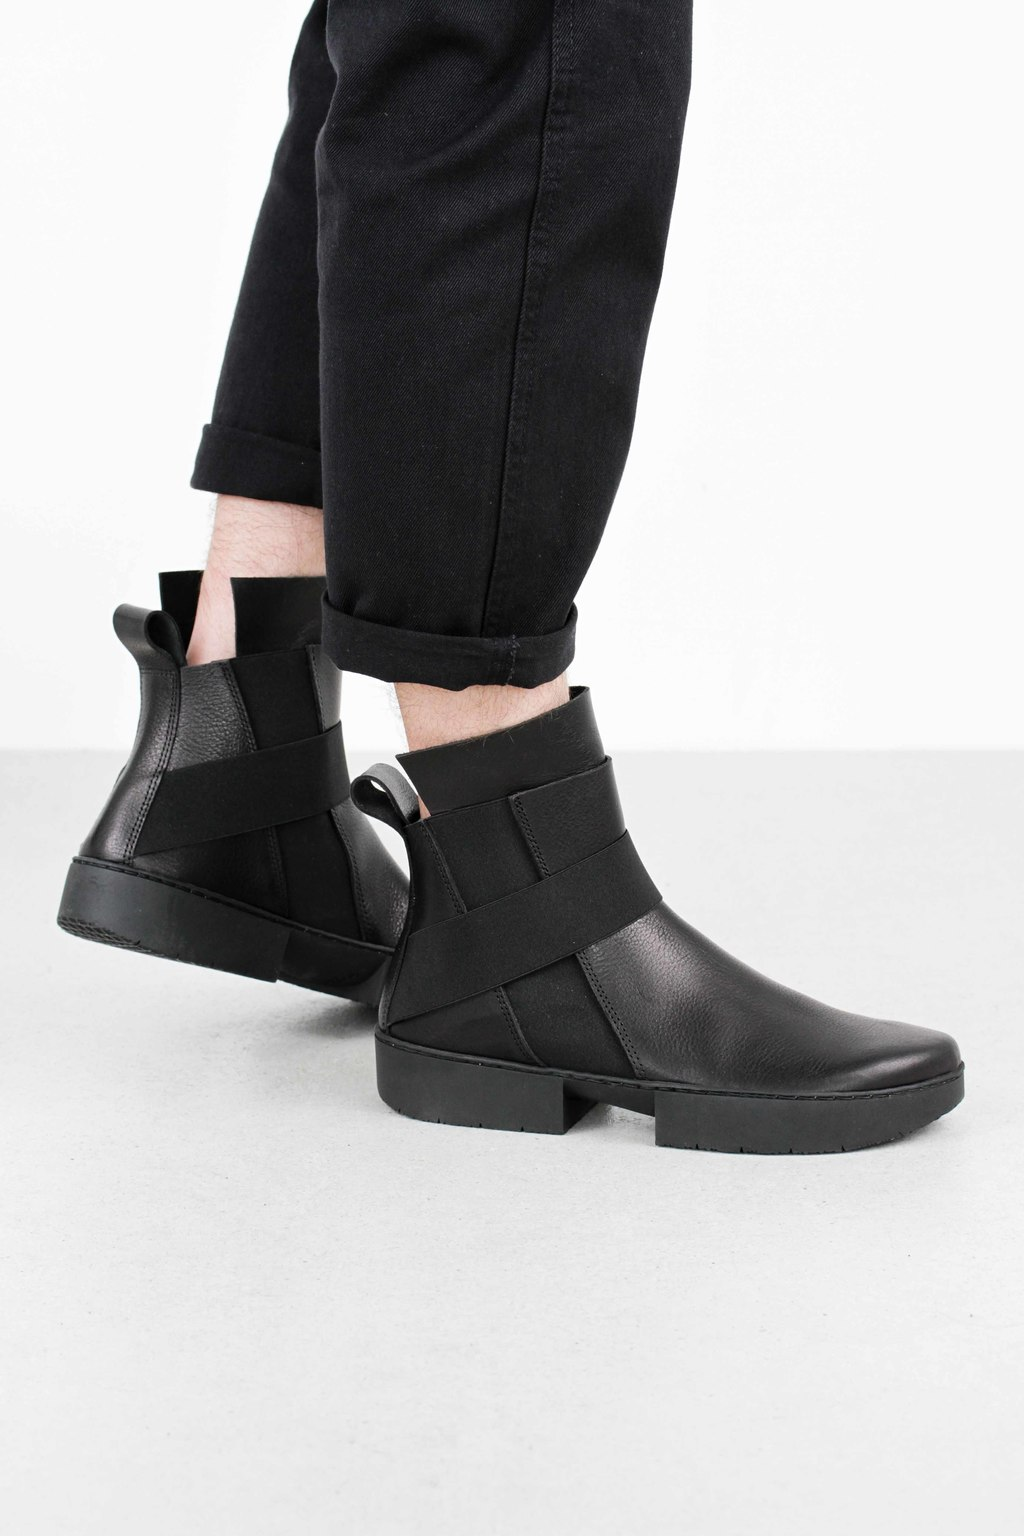 Trippen scaffold black waw so blk leathershoe2